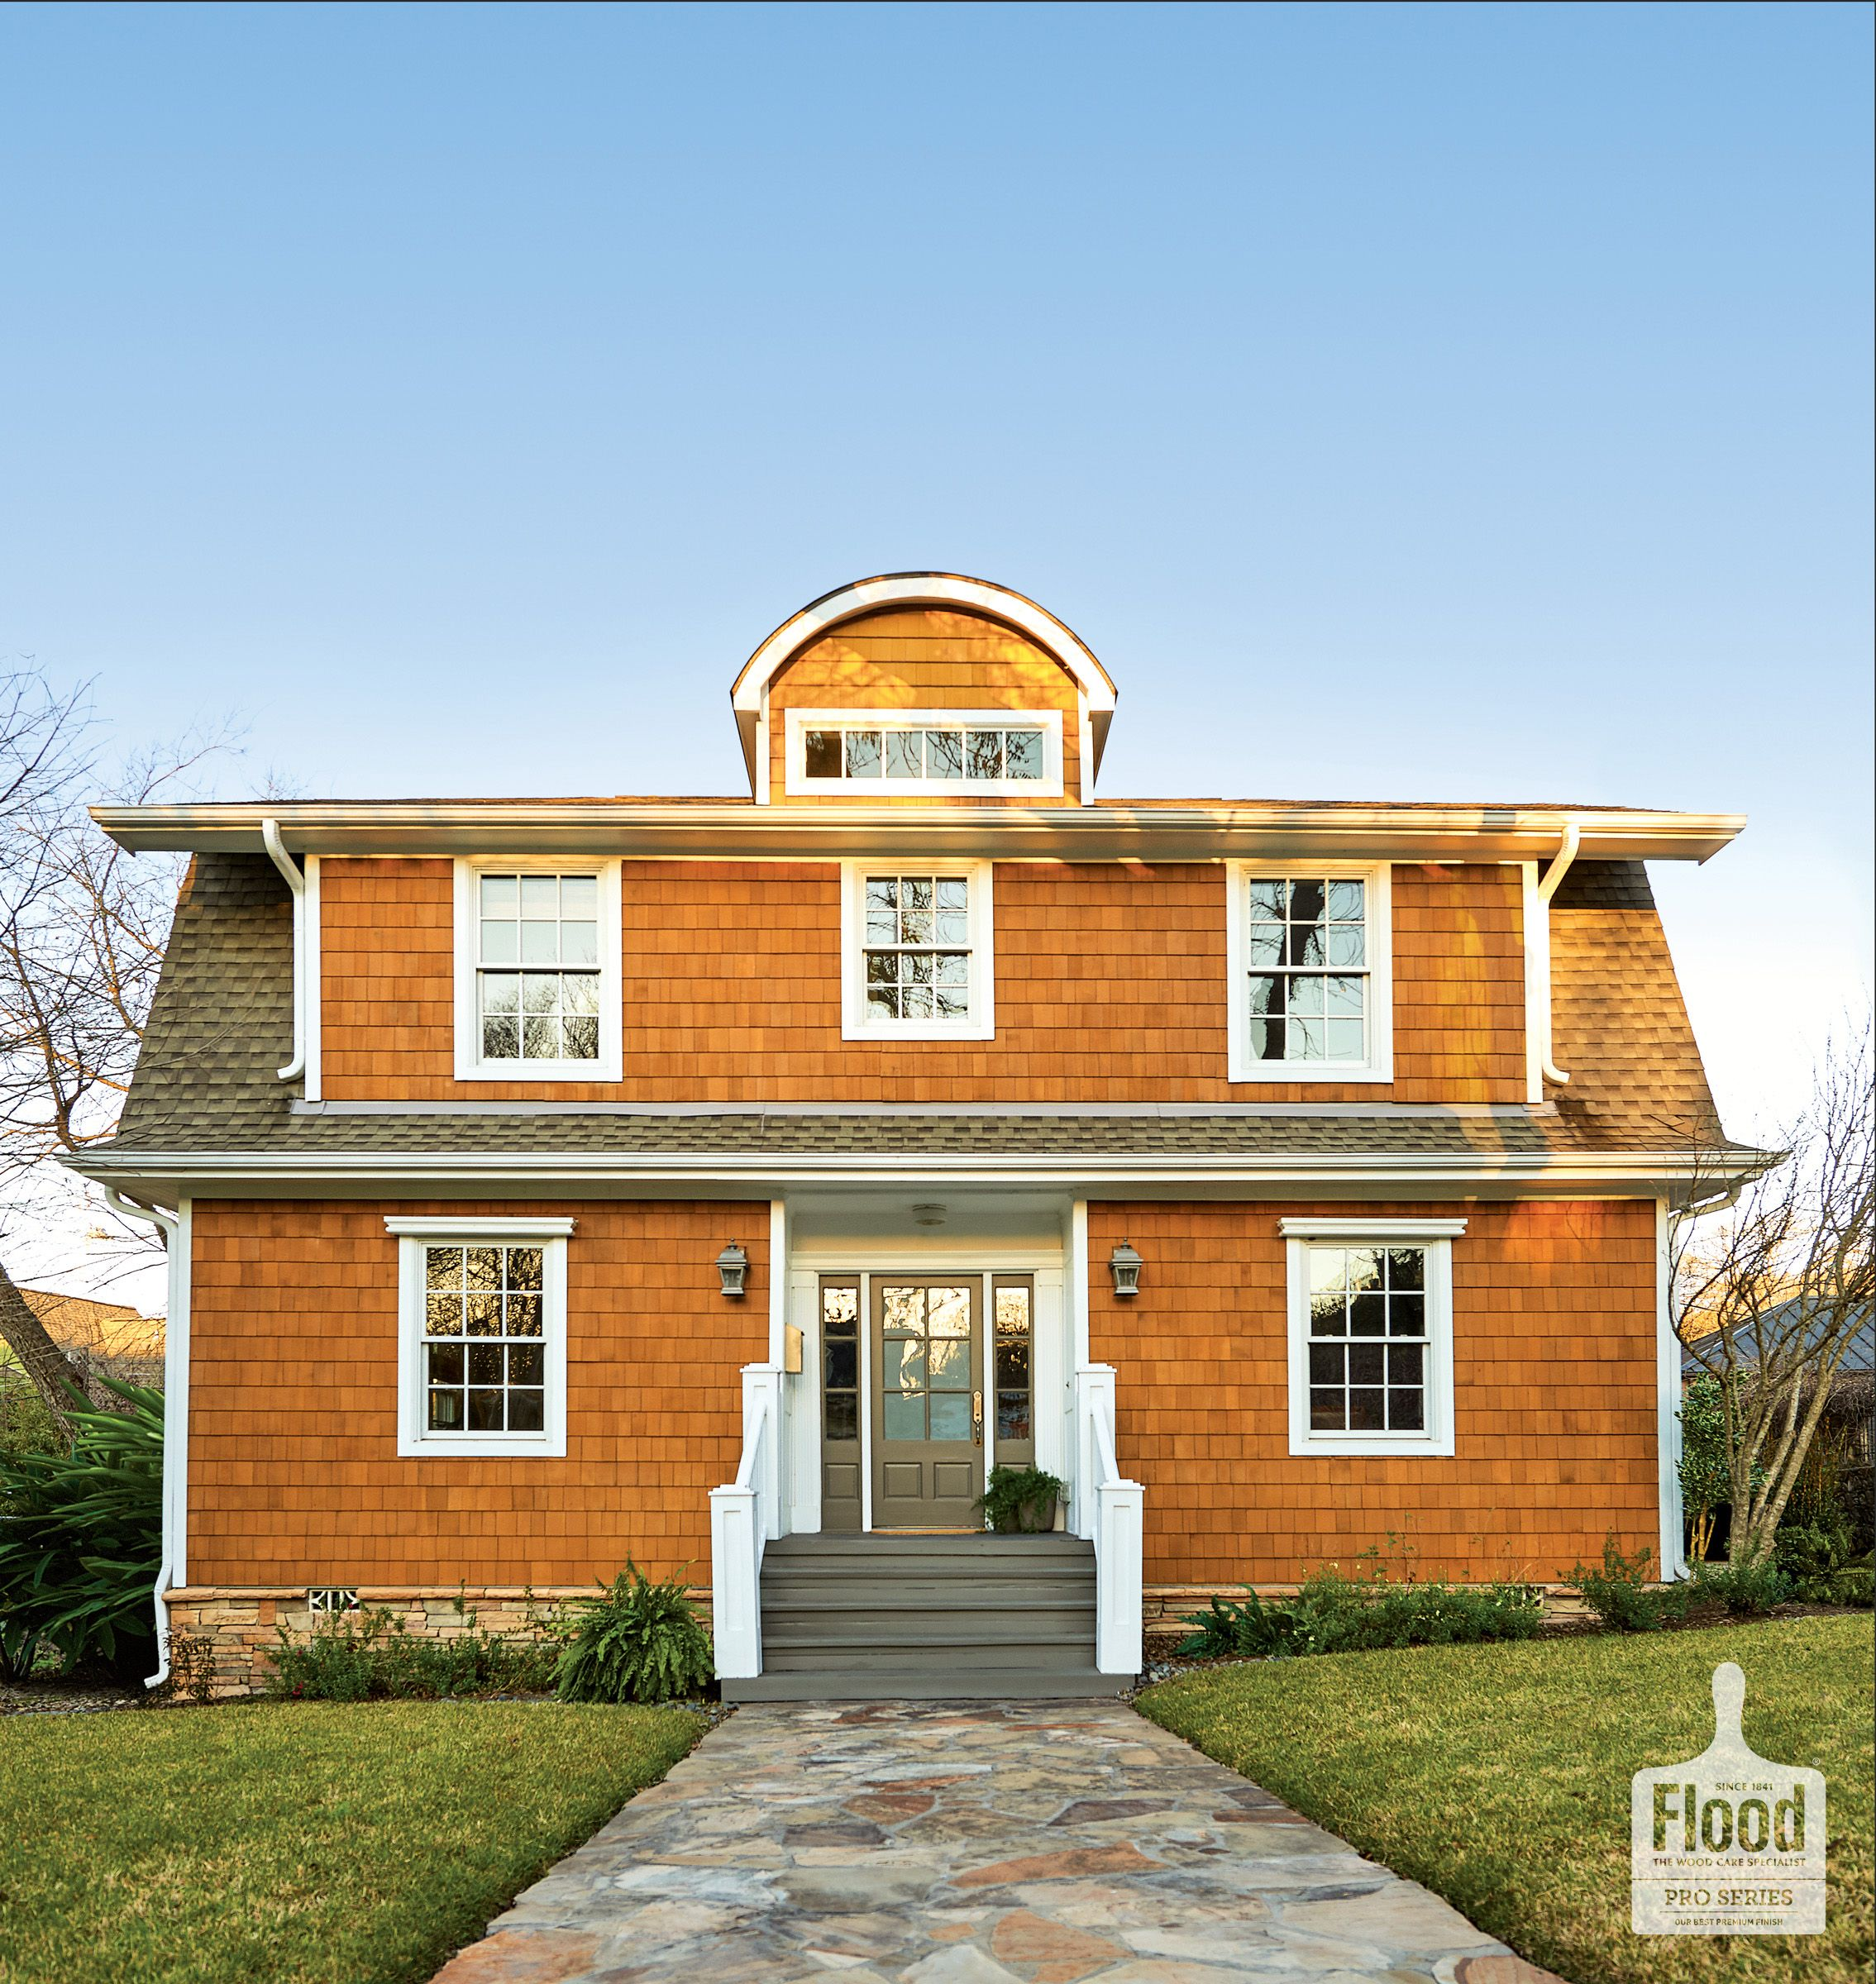 Real Cedar Shake Siding Is Protected By Flood Pro Series Cwf Uv 5 Wood Finish In Honey Gold For A Bright Wood Siding Exterior Cedar Shake Siding Wood Siding